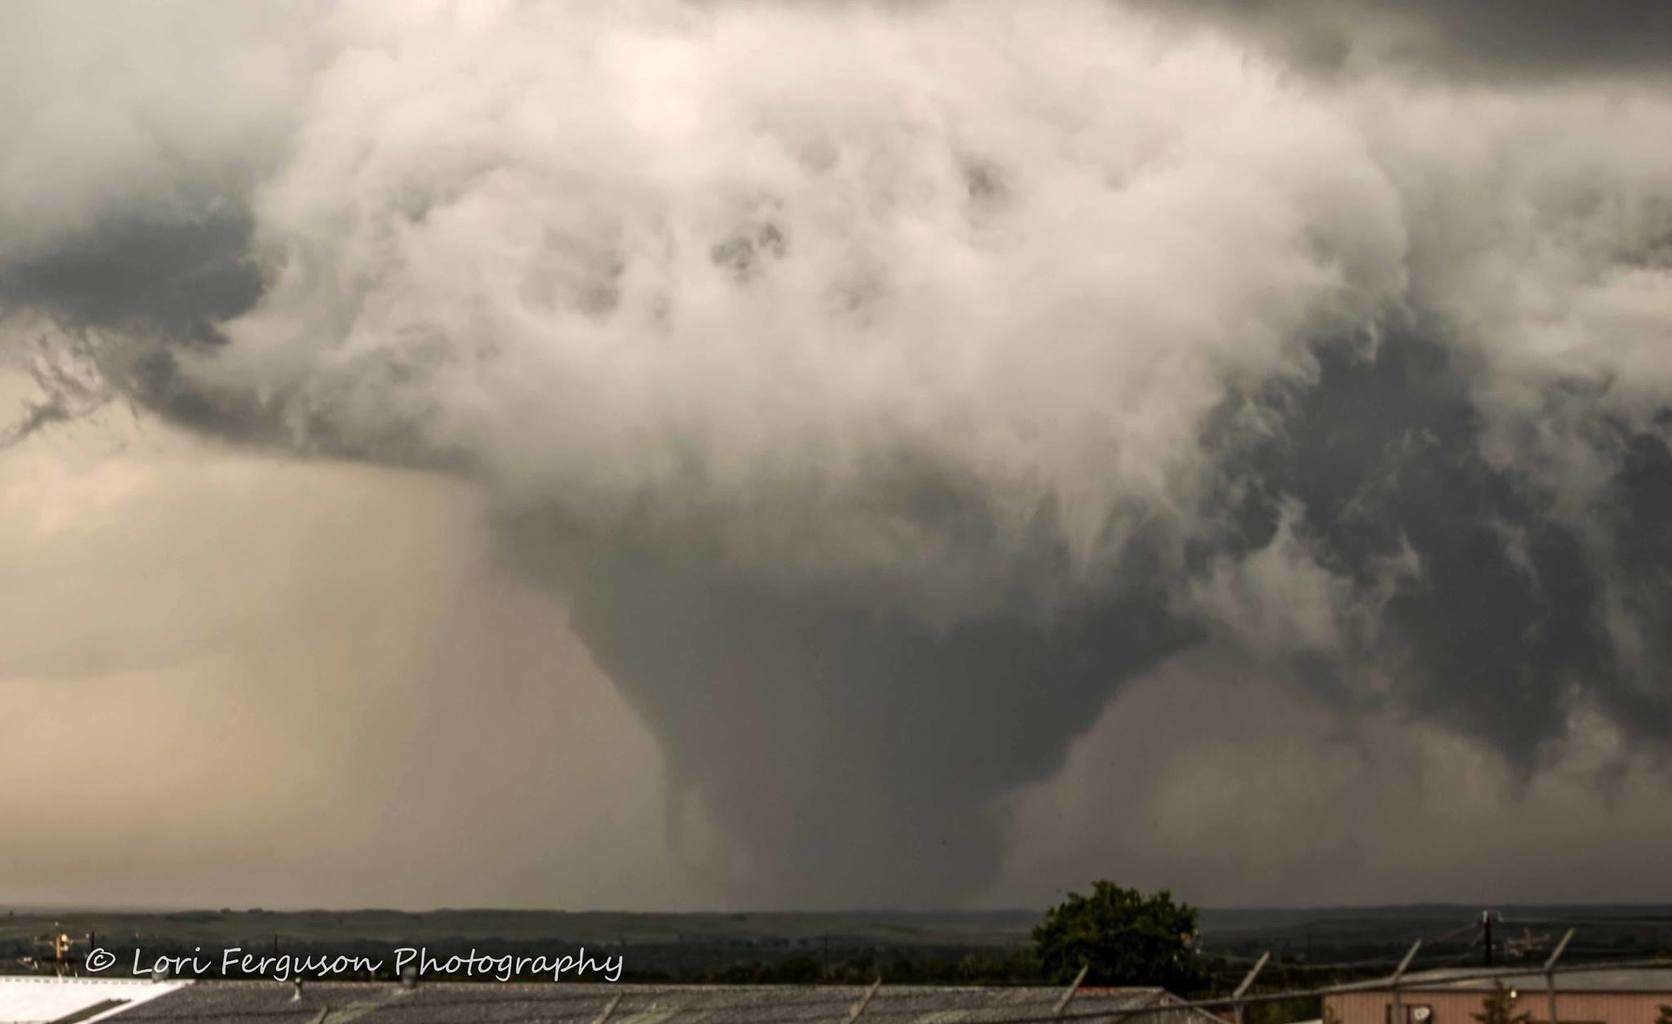 Another view of the May 27th Canadian, TX tornado. It was nearing the end of its cycle here, looking like a gigantic ice cream cone. And you can see a horizontal vortex on the left.